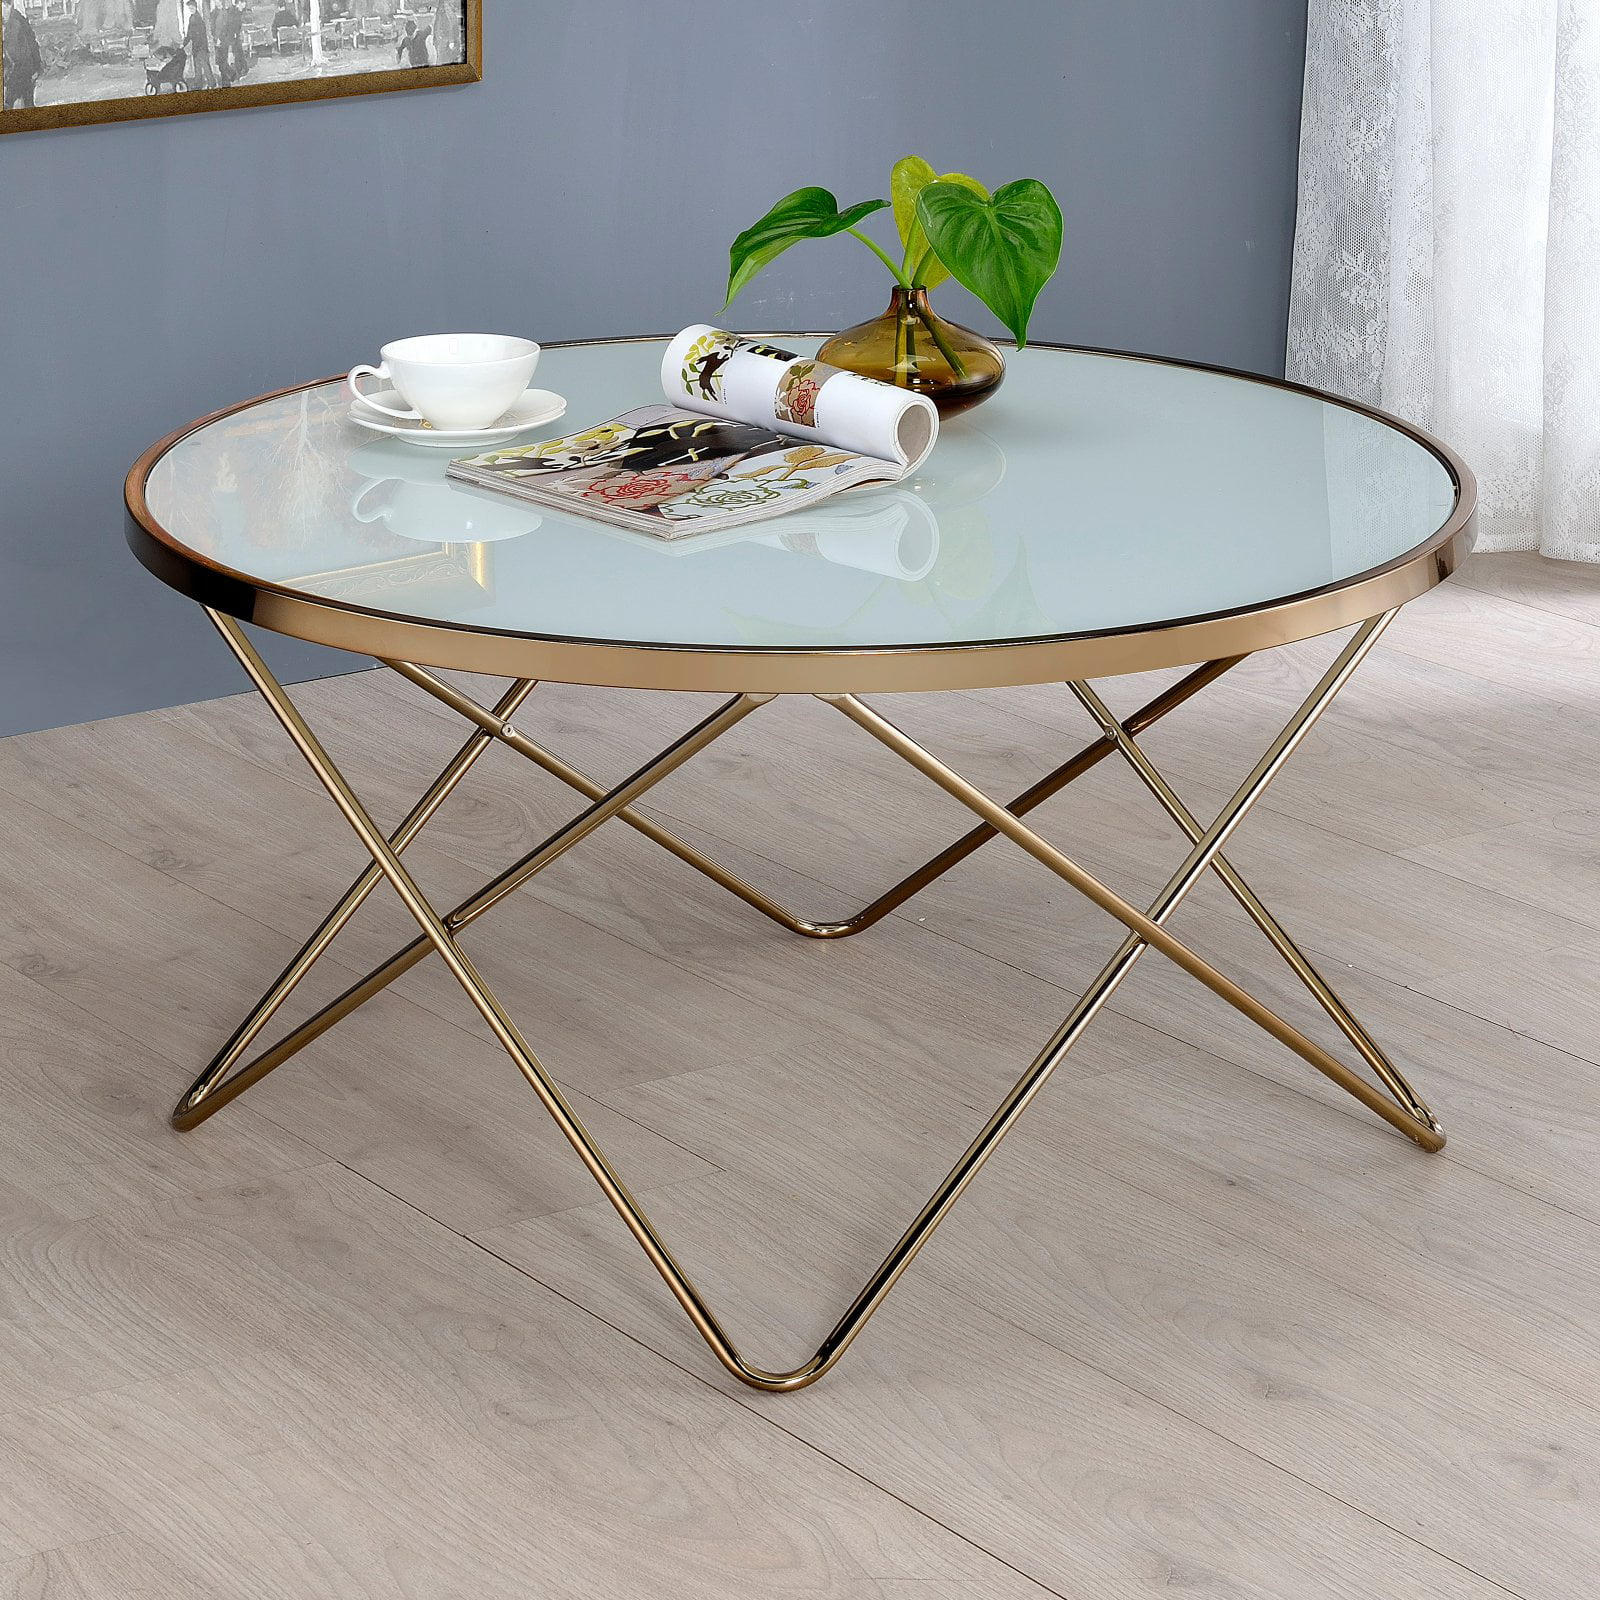 - ACME Valora Coffee Table, Multiple Colors - Walmart.com - Walmart.com